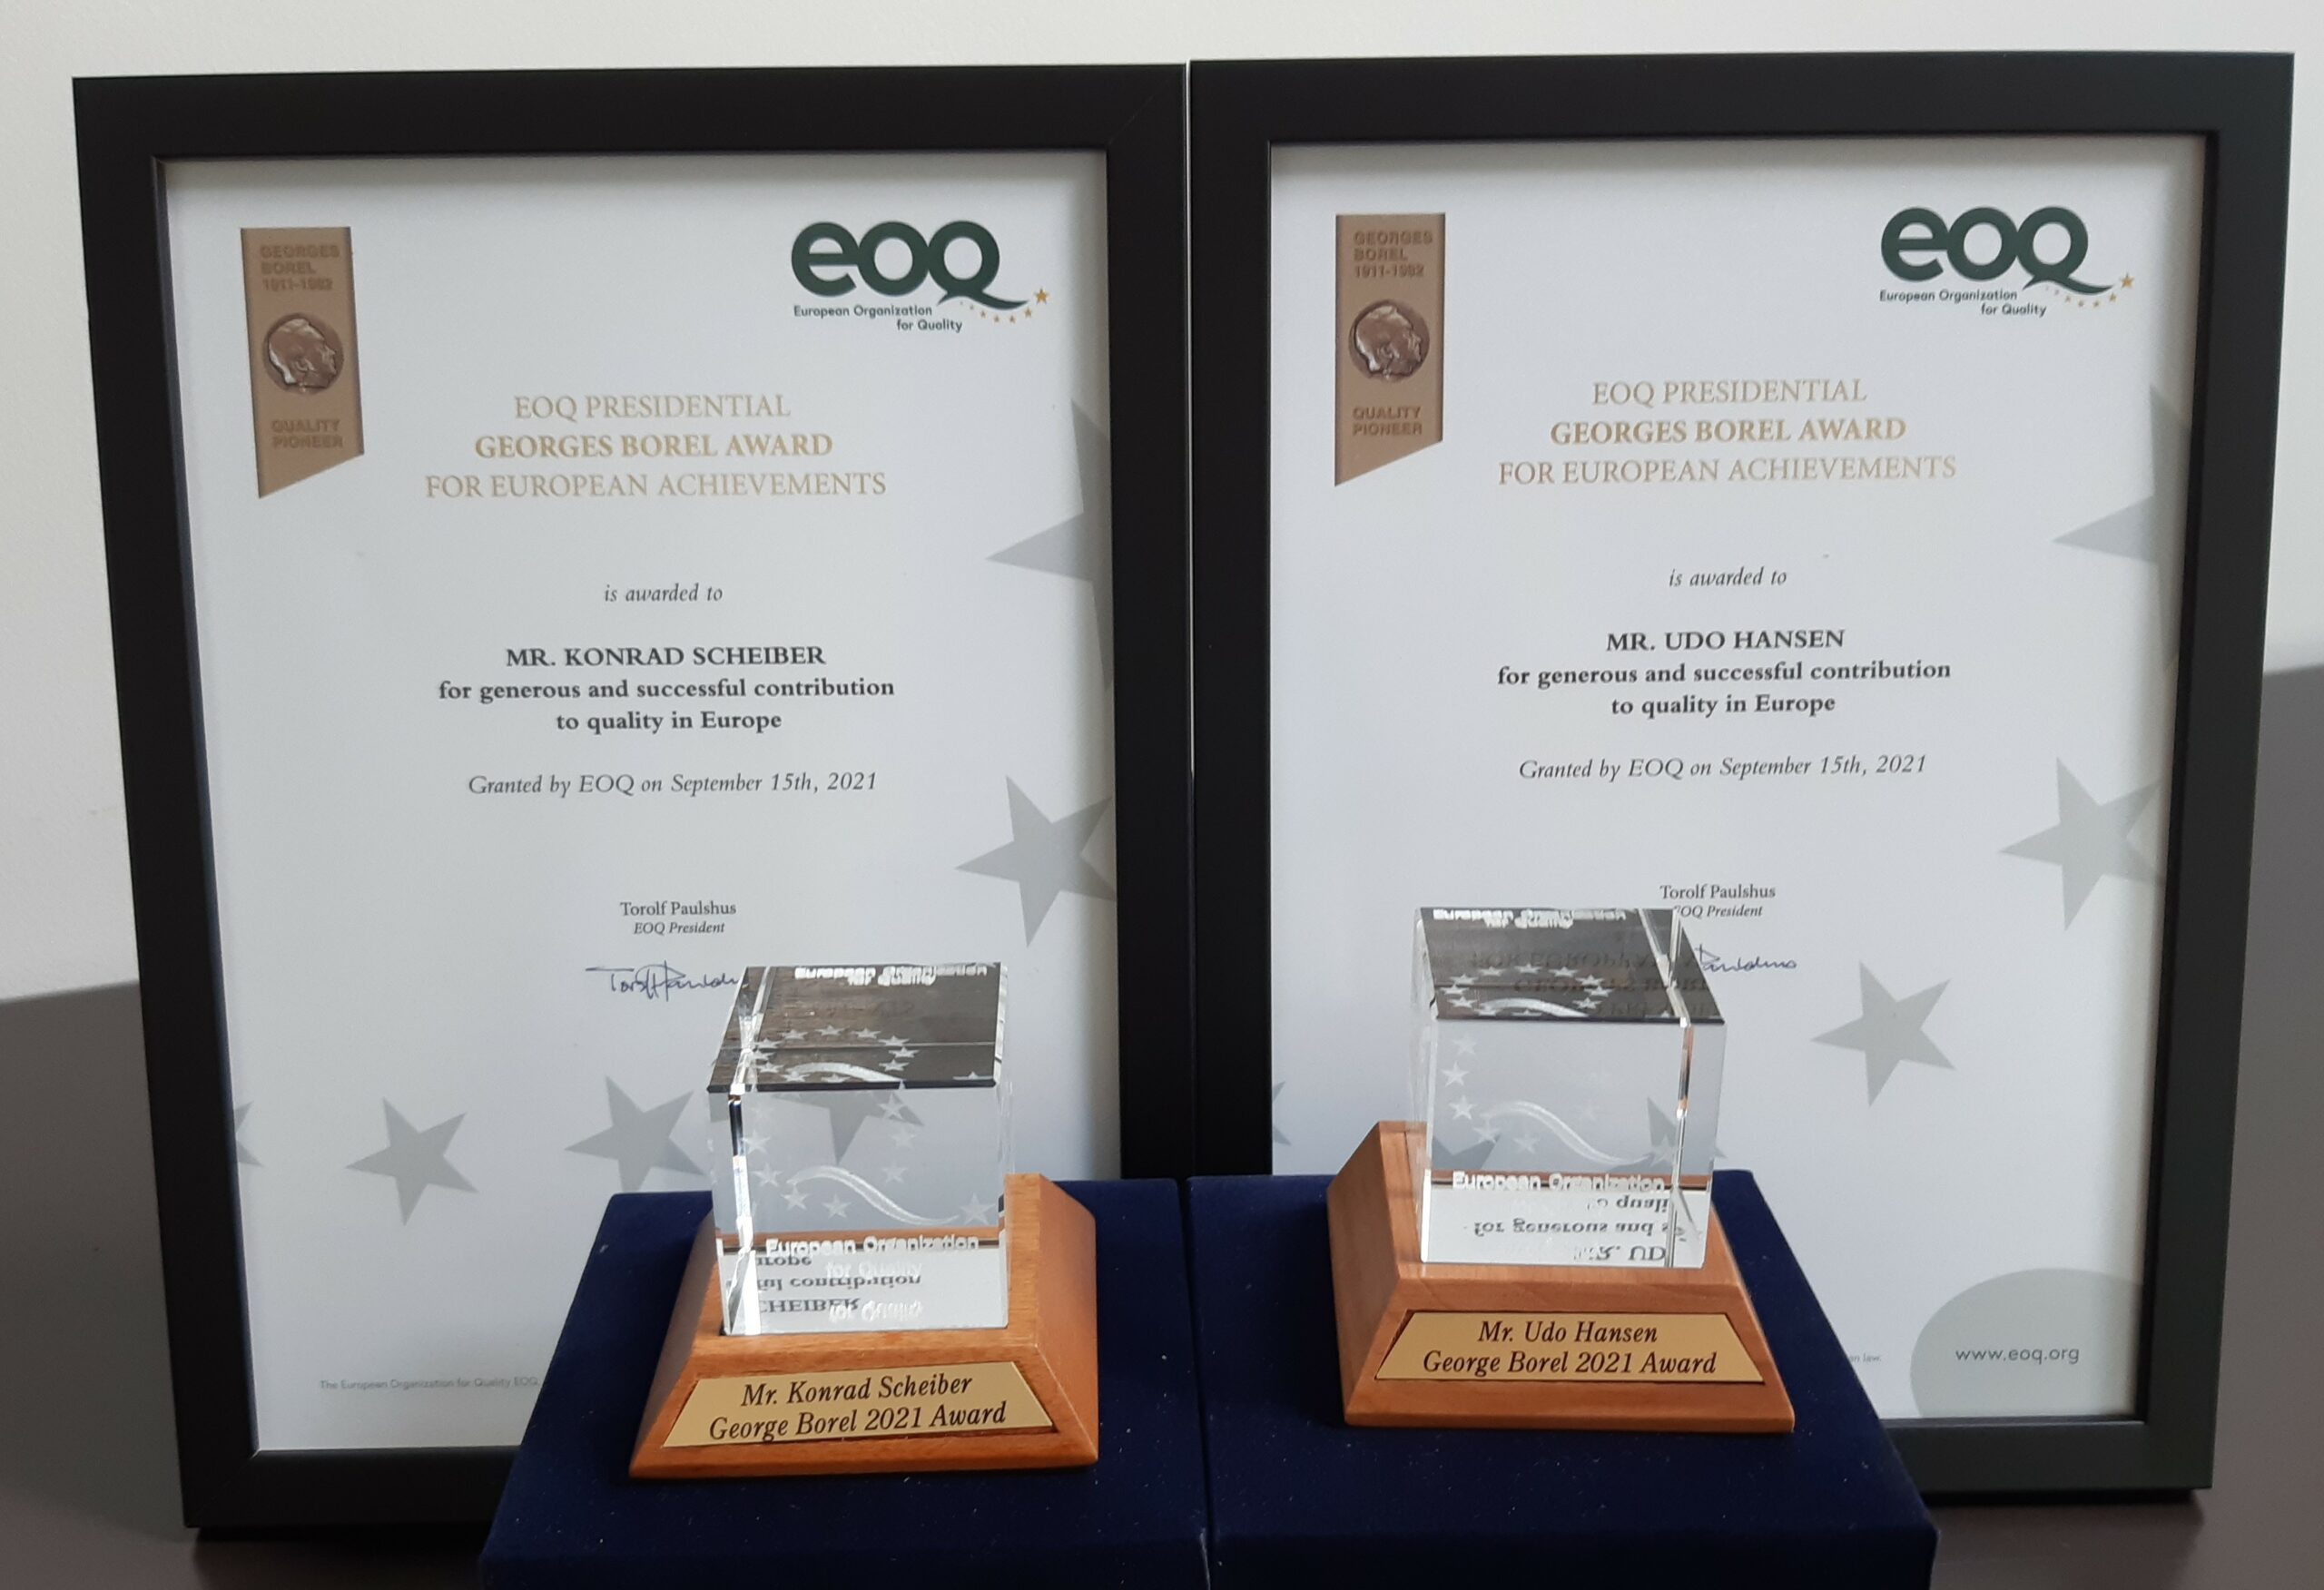 PRESS RELEASE – EOQ Presidential Georges Borel Awarding 2021